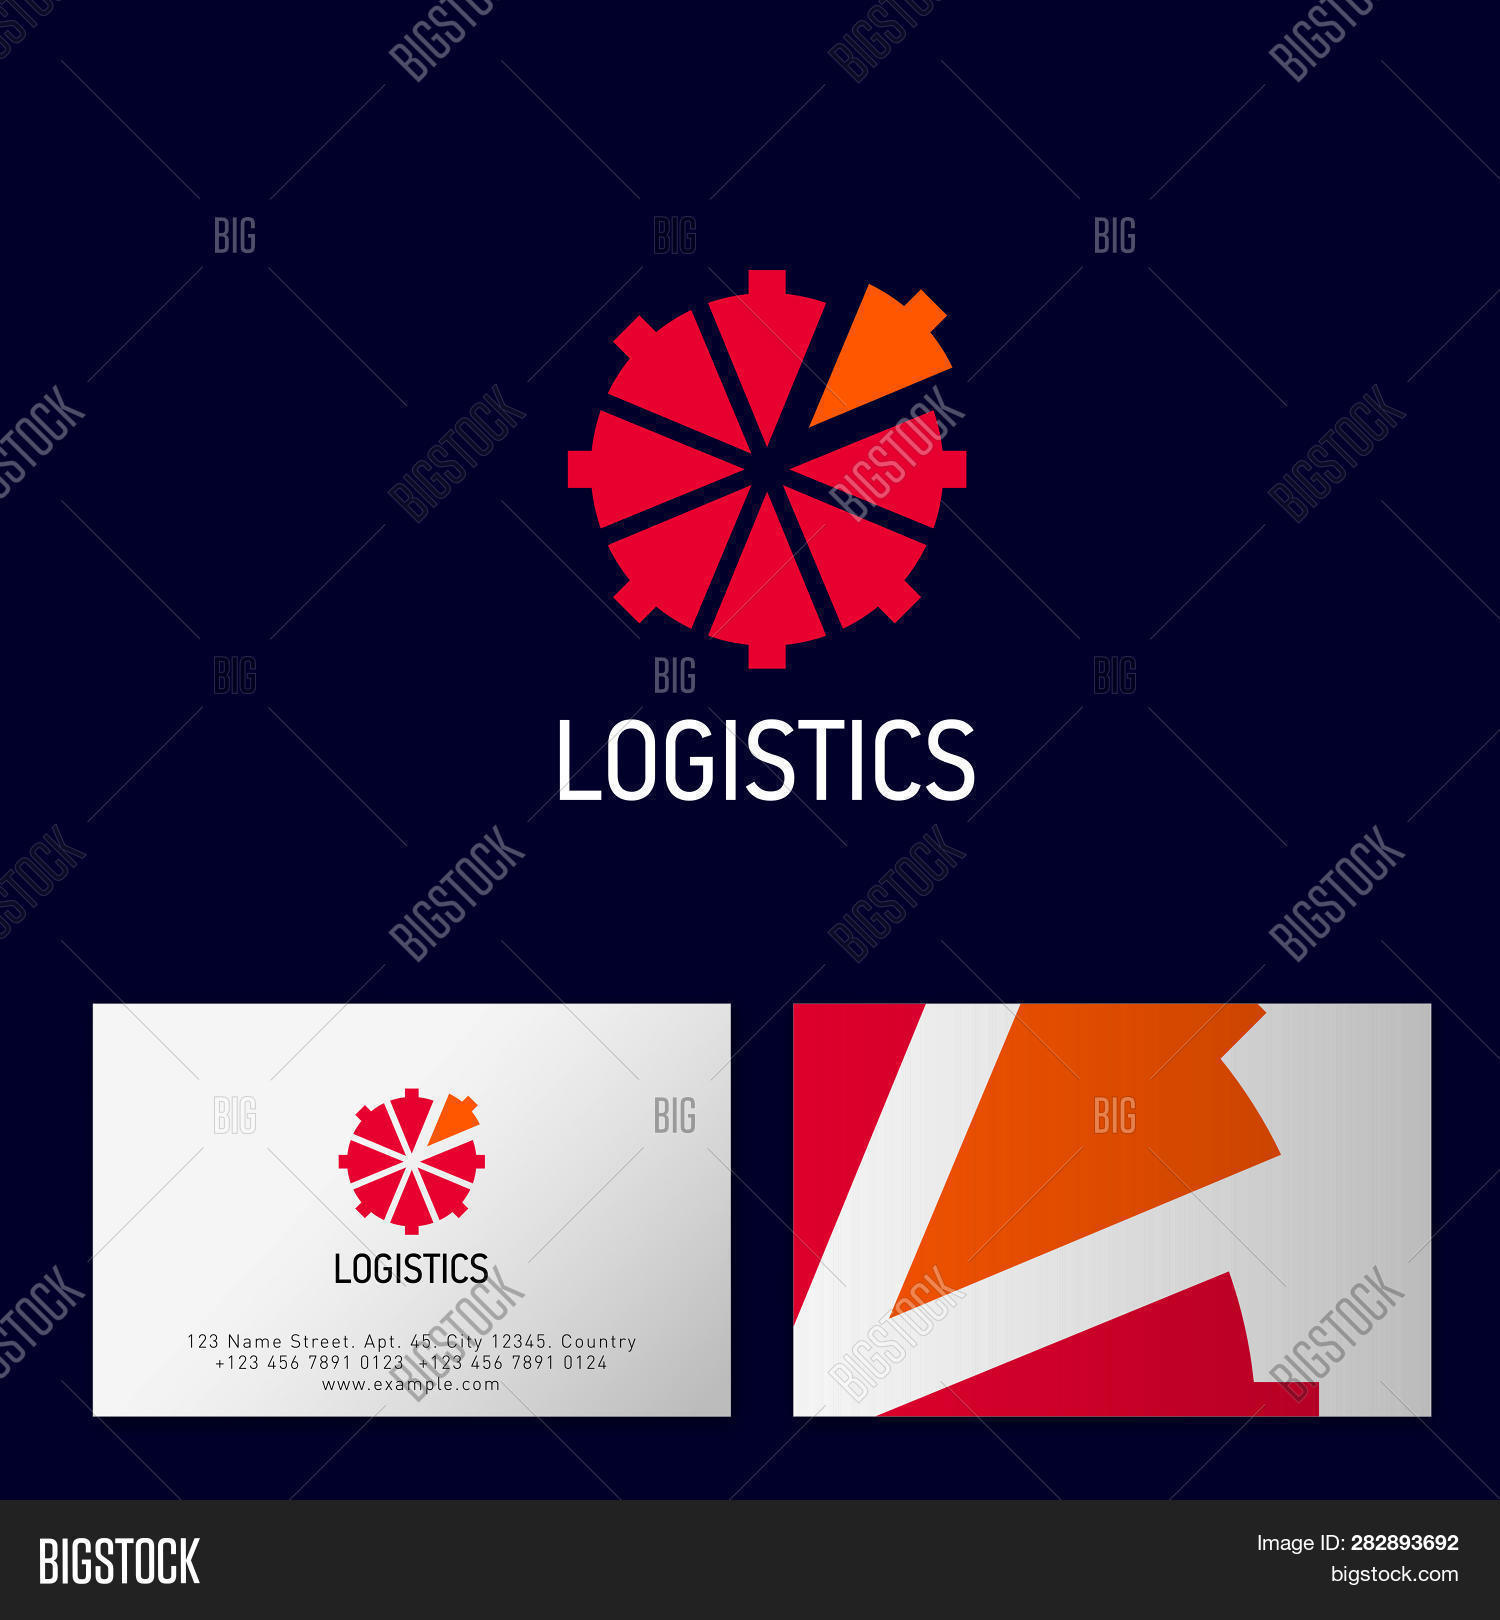 Logistics Logo  Vector & Photo (Free Trial) | Bigstock